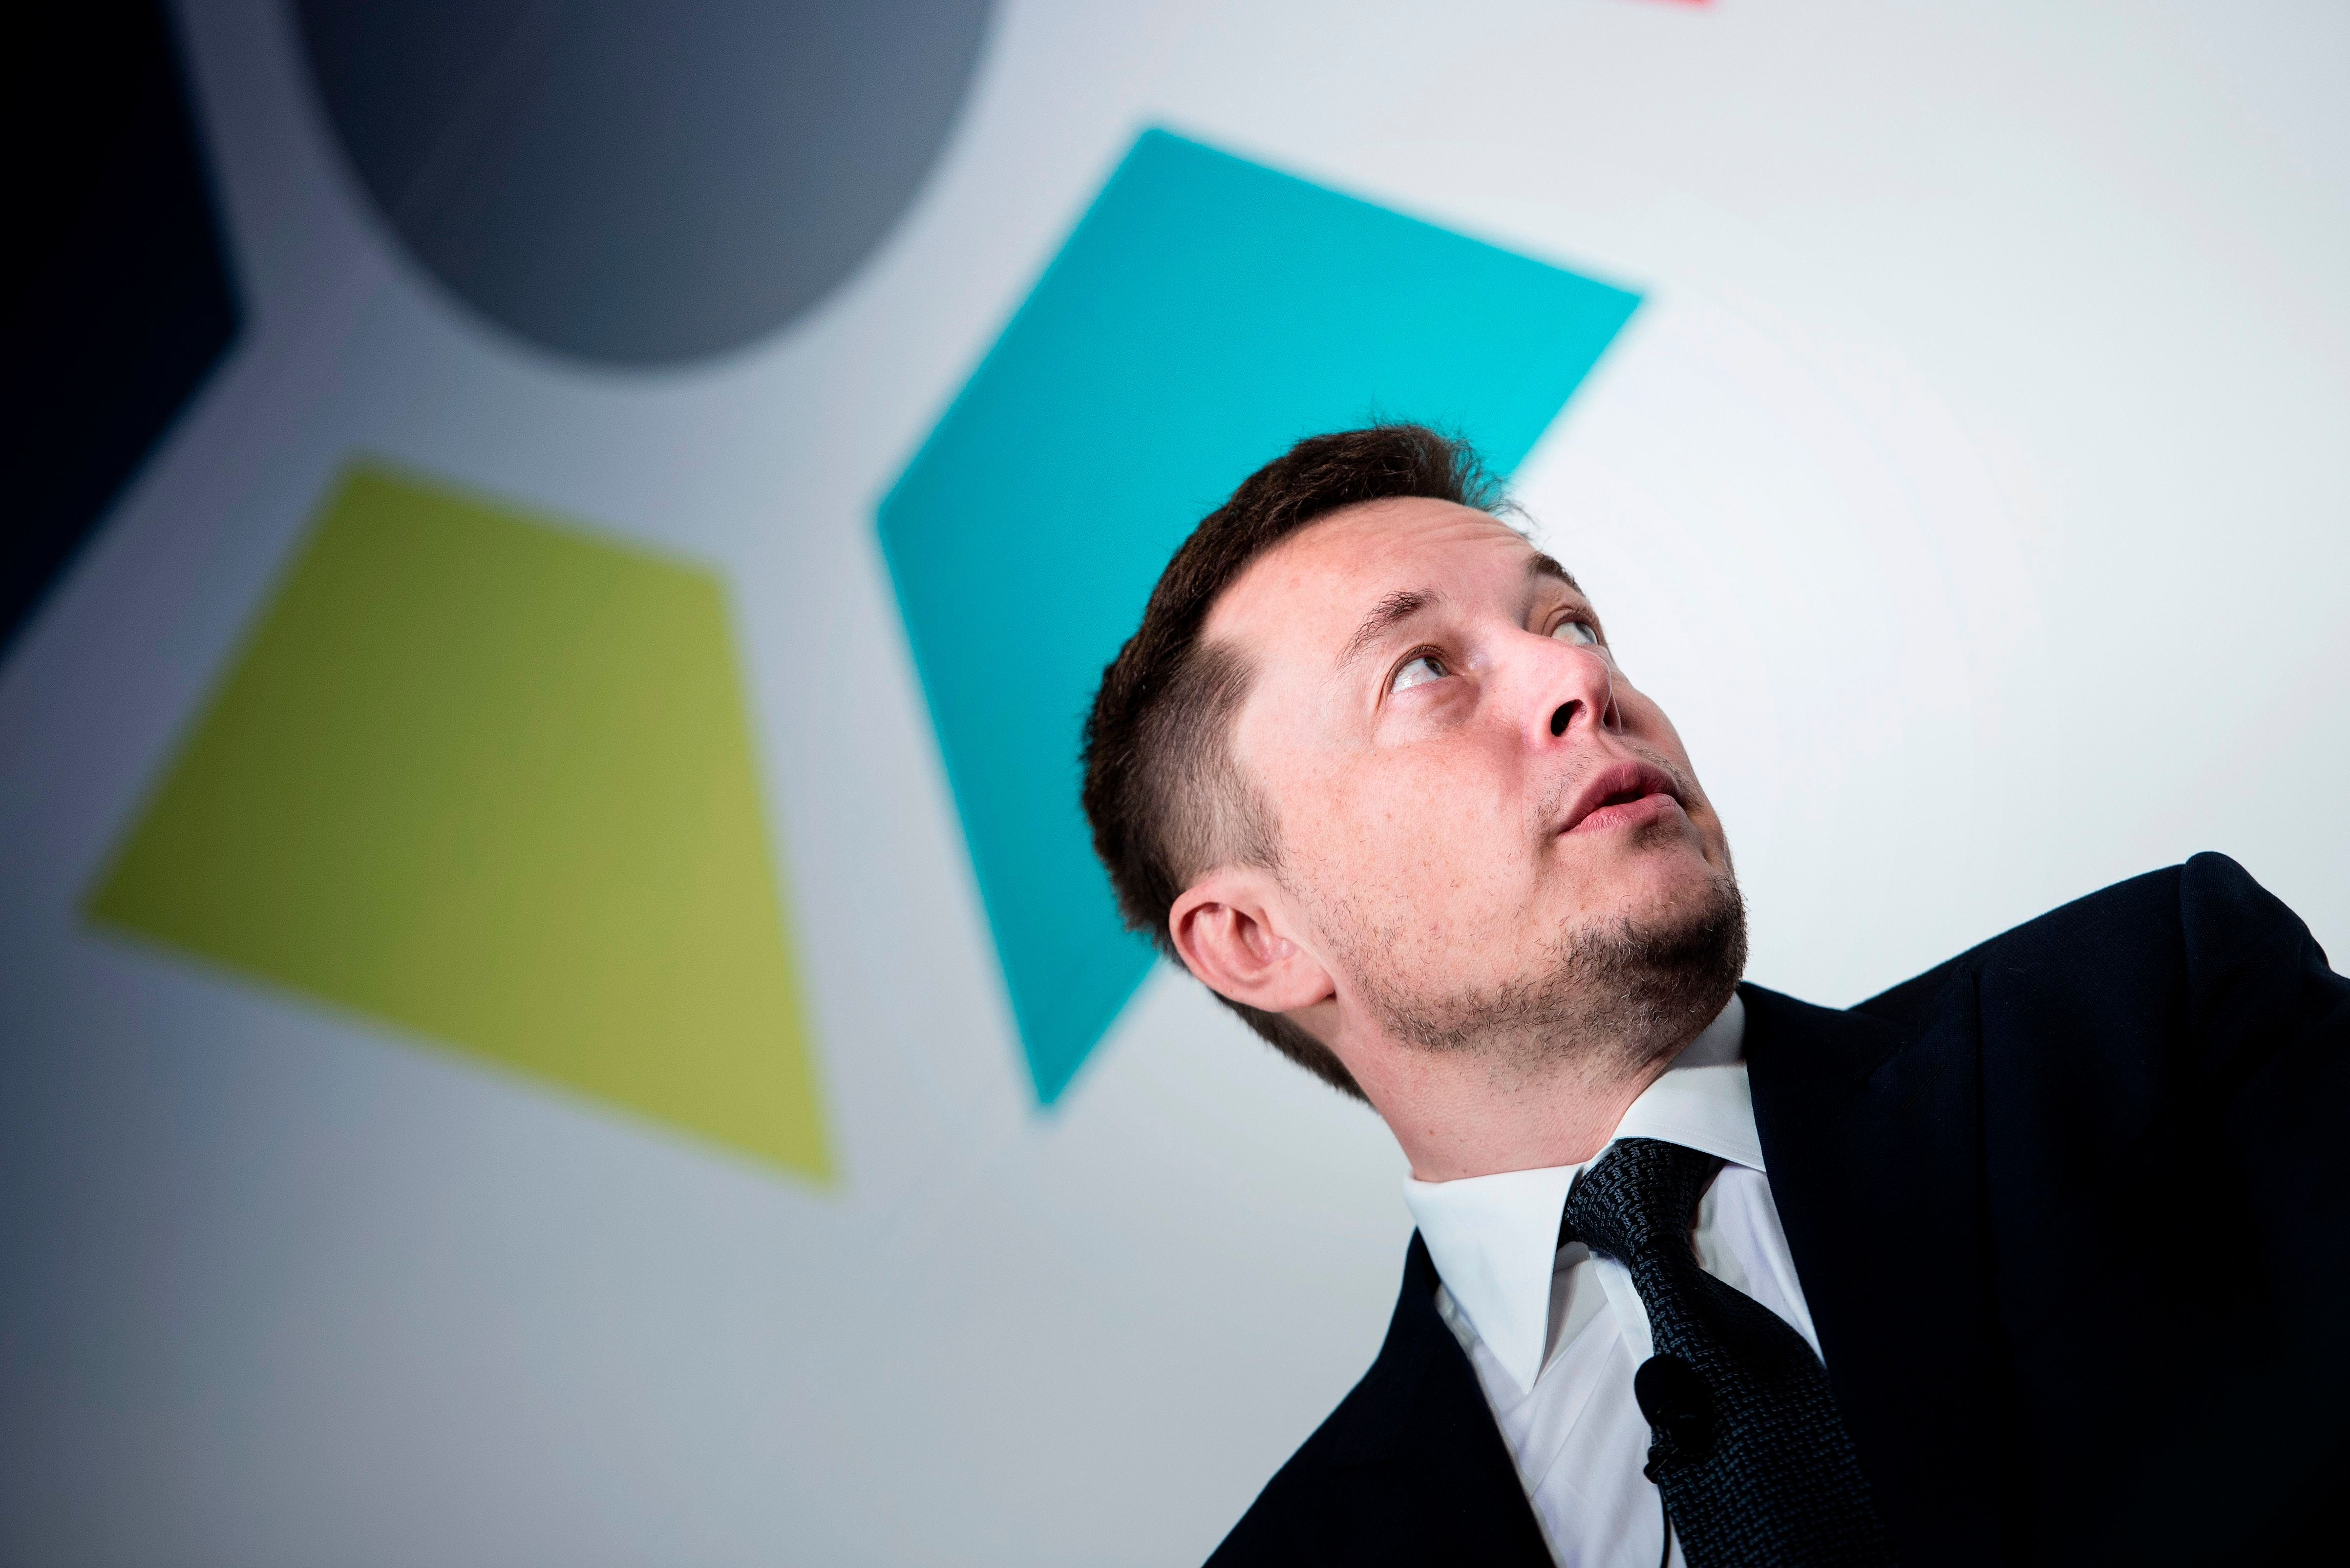 Elon Musk And Over 100 Experts Have Pleaded For A Total Ban On Killer Robots